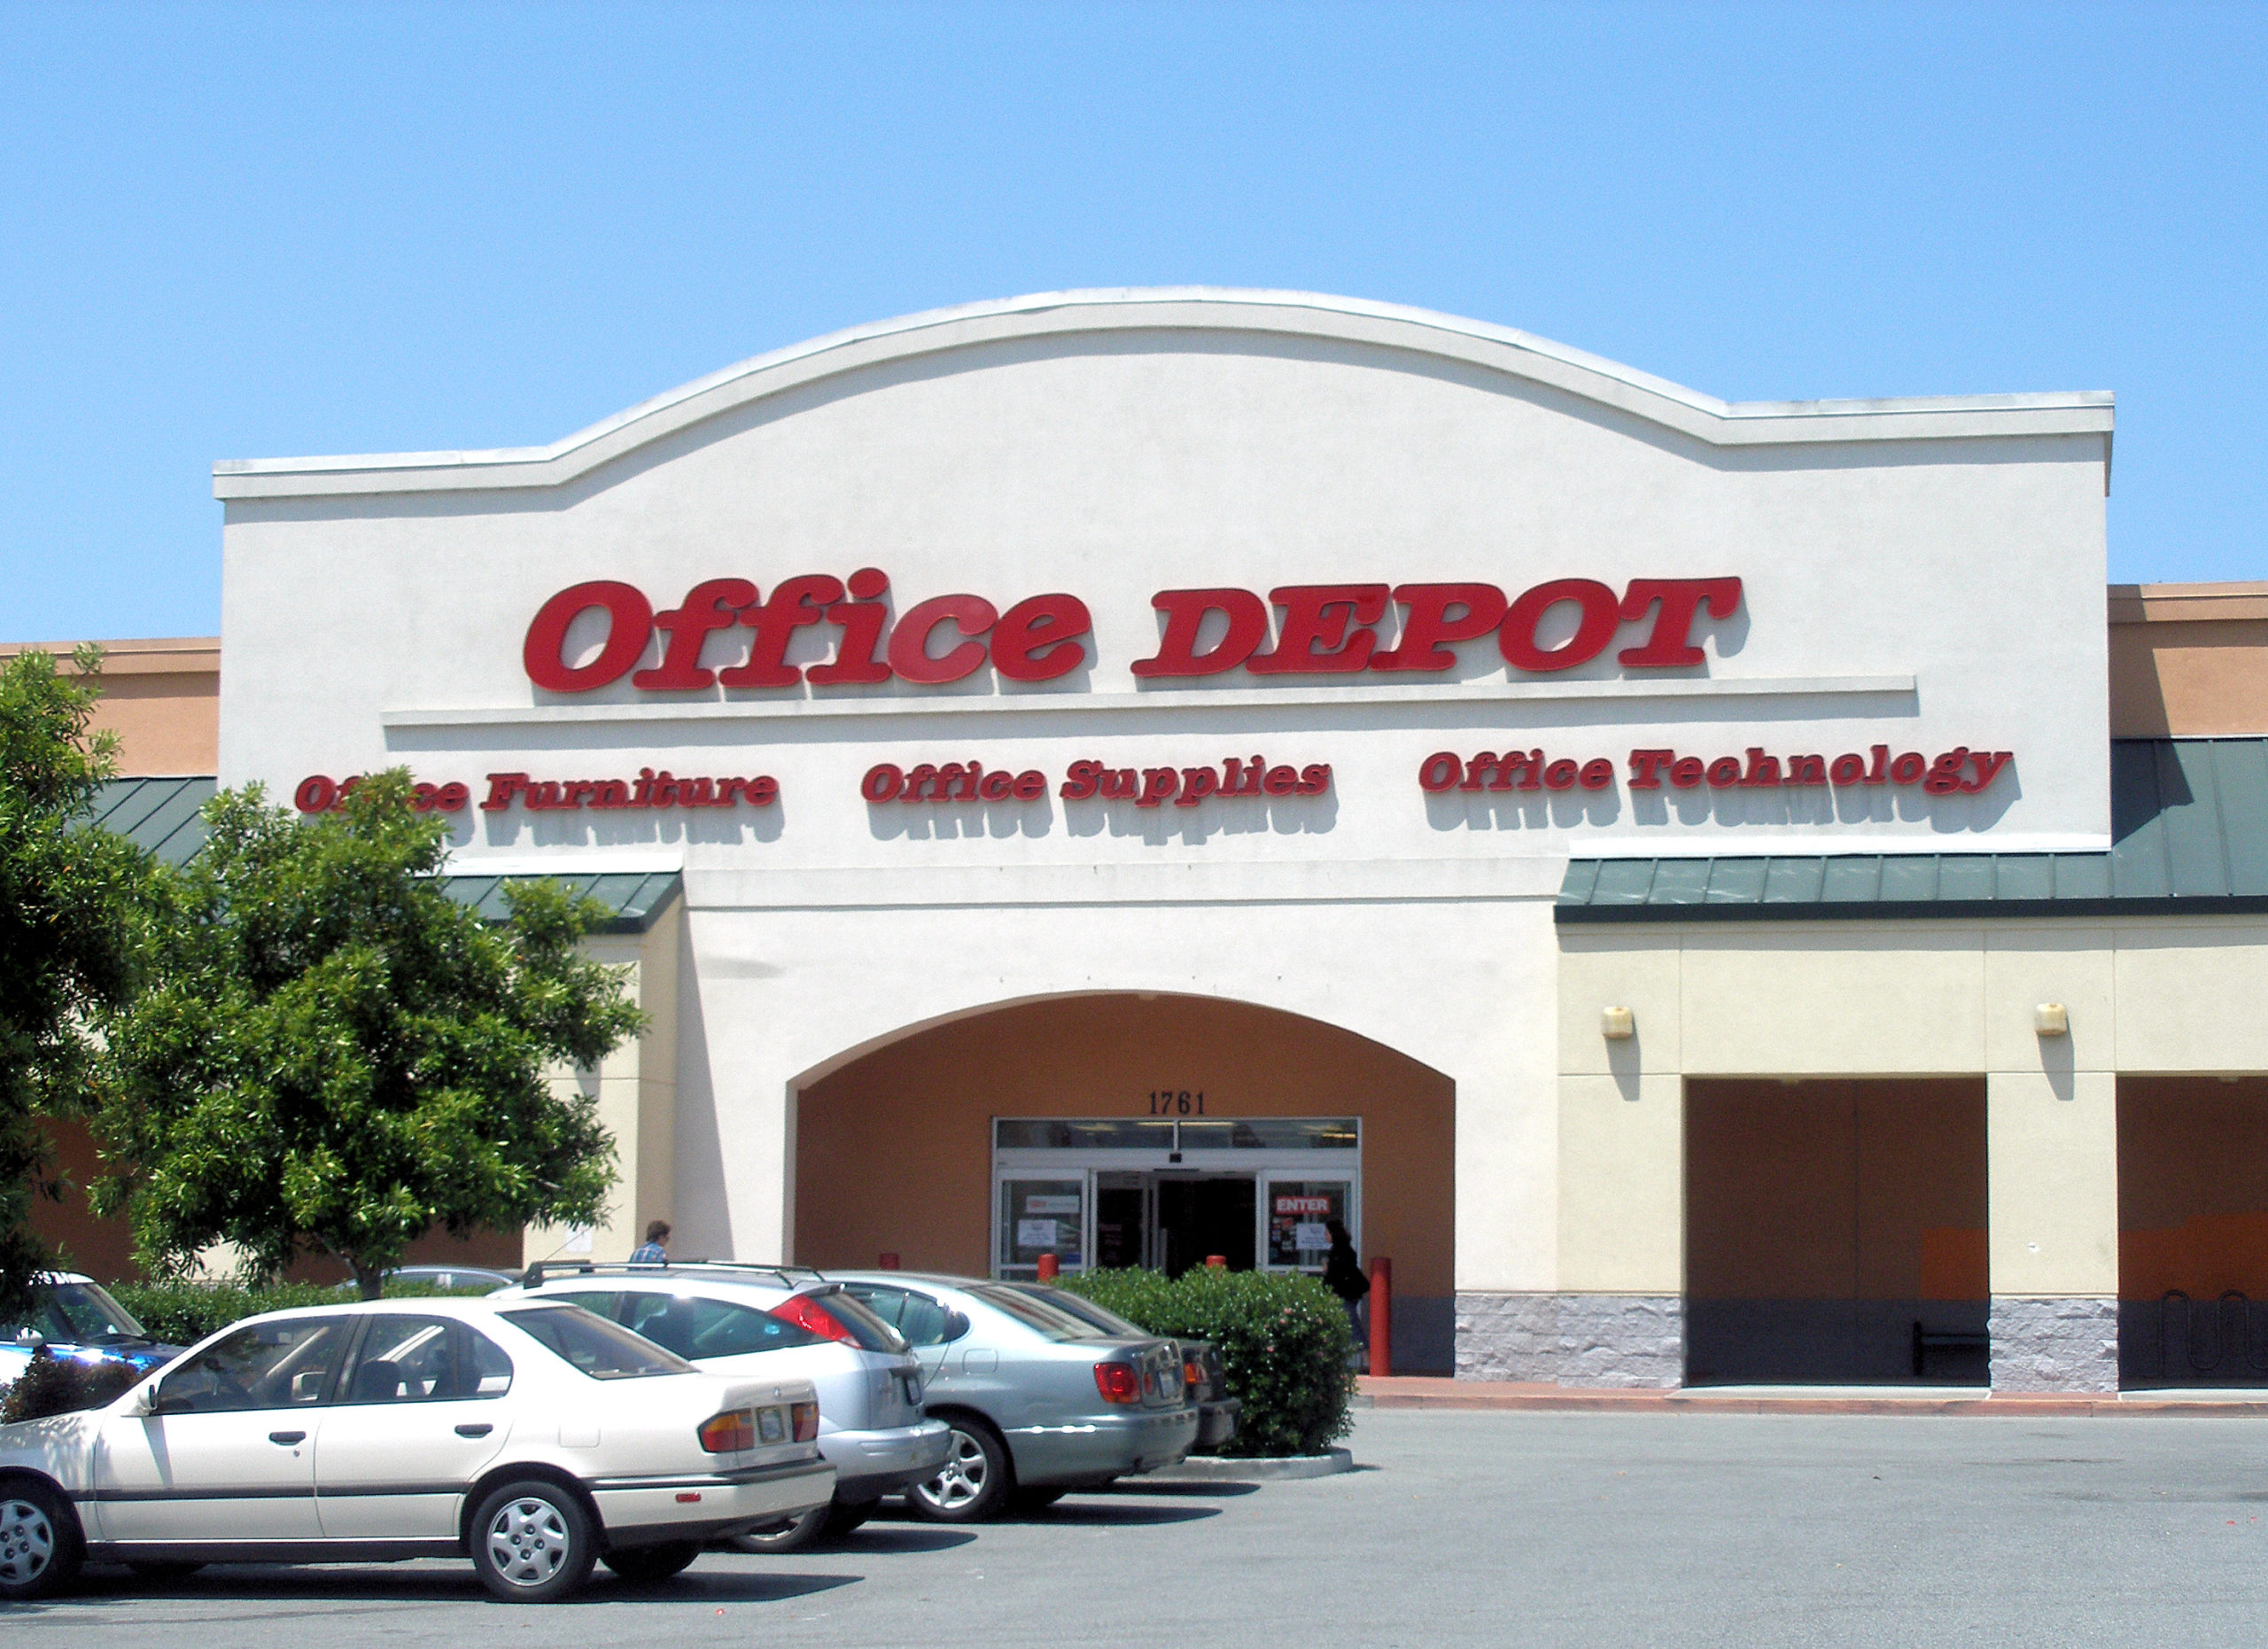 does Office Depot hire felons in all stores